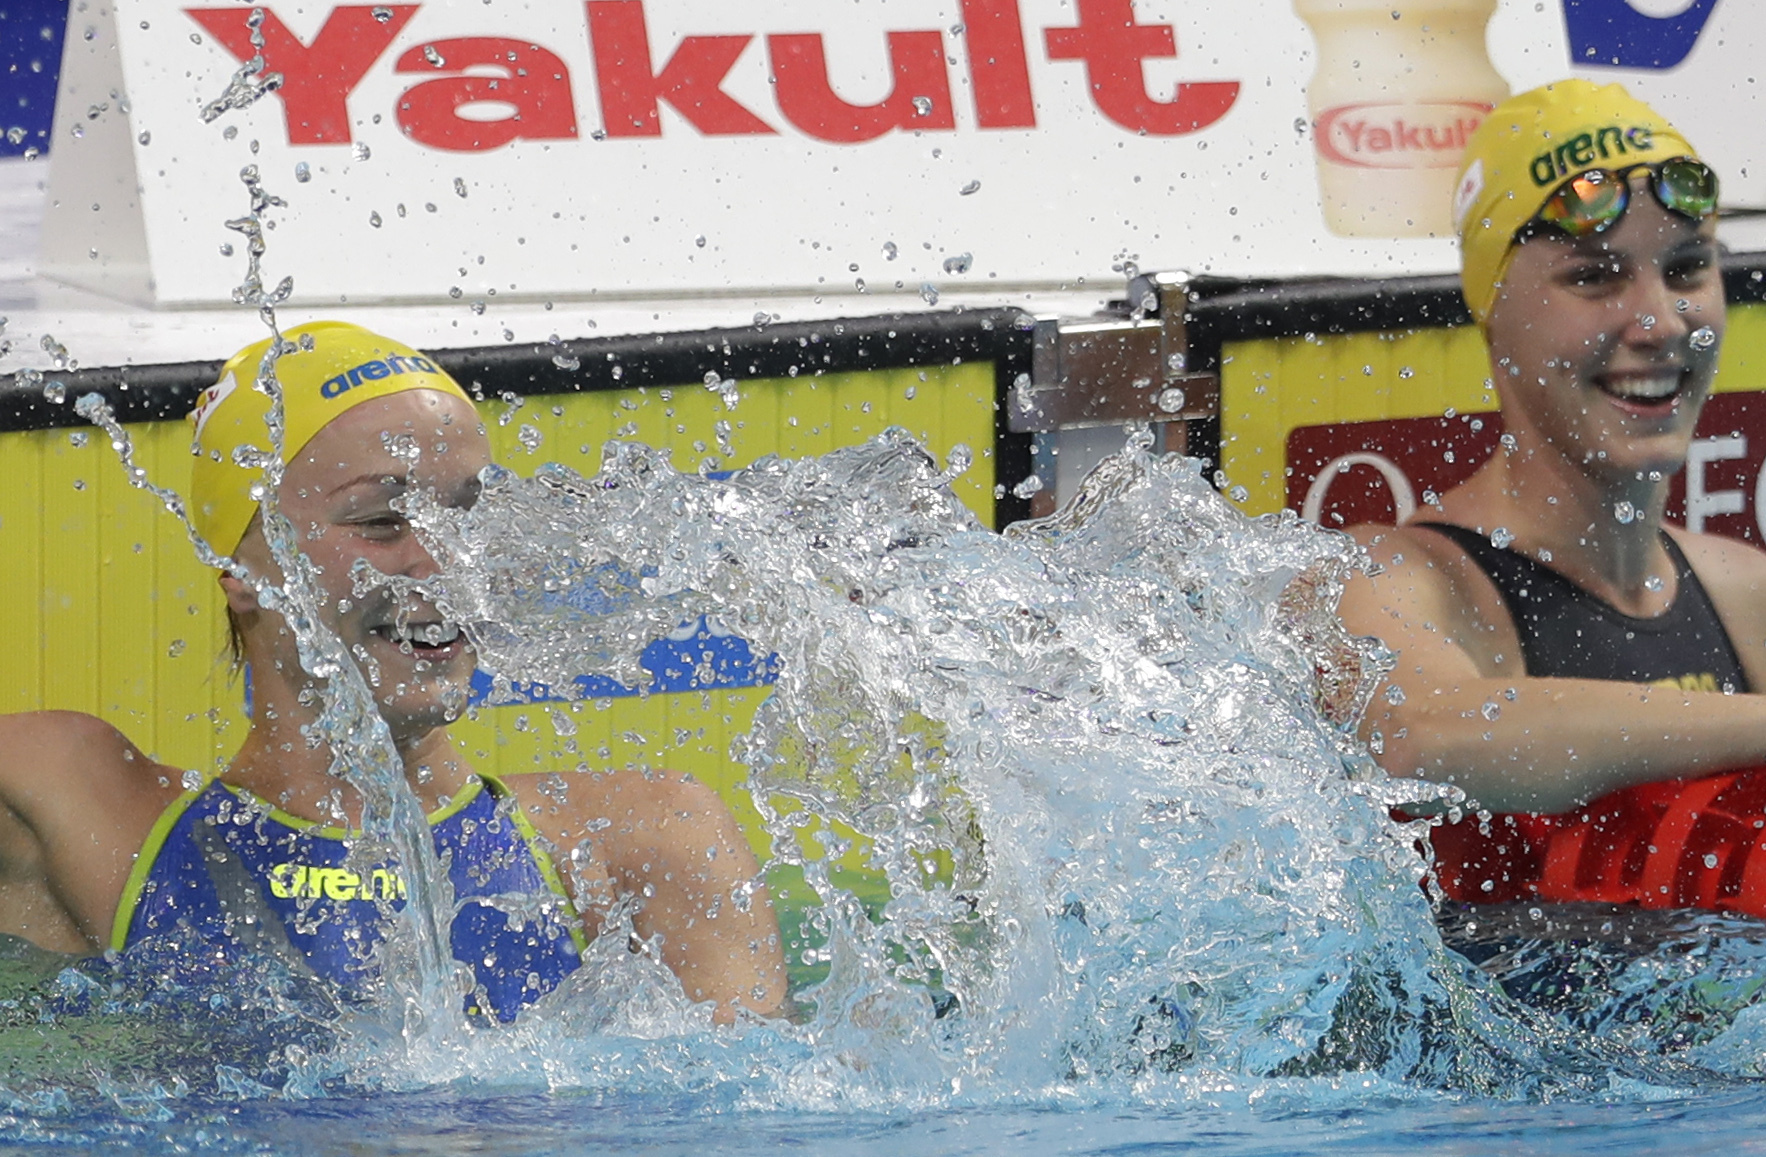 Sweden's Sarah Sjostrom celebrates after setting a new world record in a women's 50-meter freestyle semifinal during the swimming competitions of the World Aquatics Championships in Budapest, Hungary, Saturday, July 29, 2017. (AP Photo/Petr David Josek)